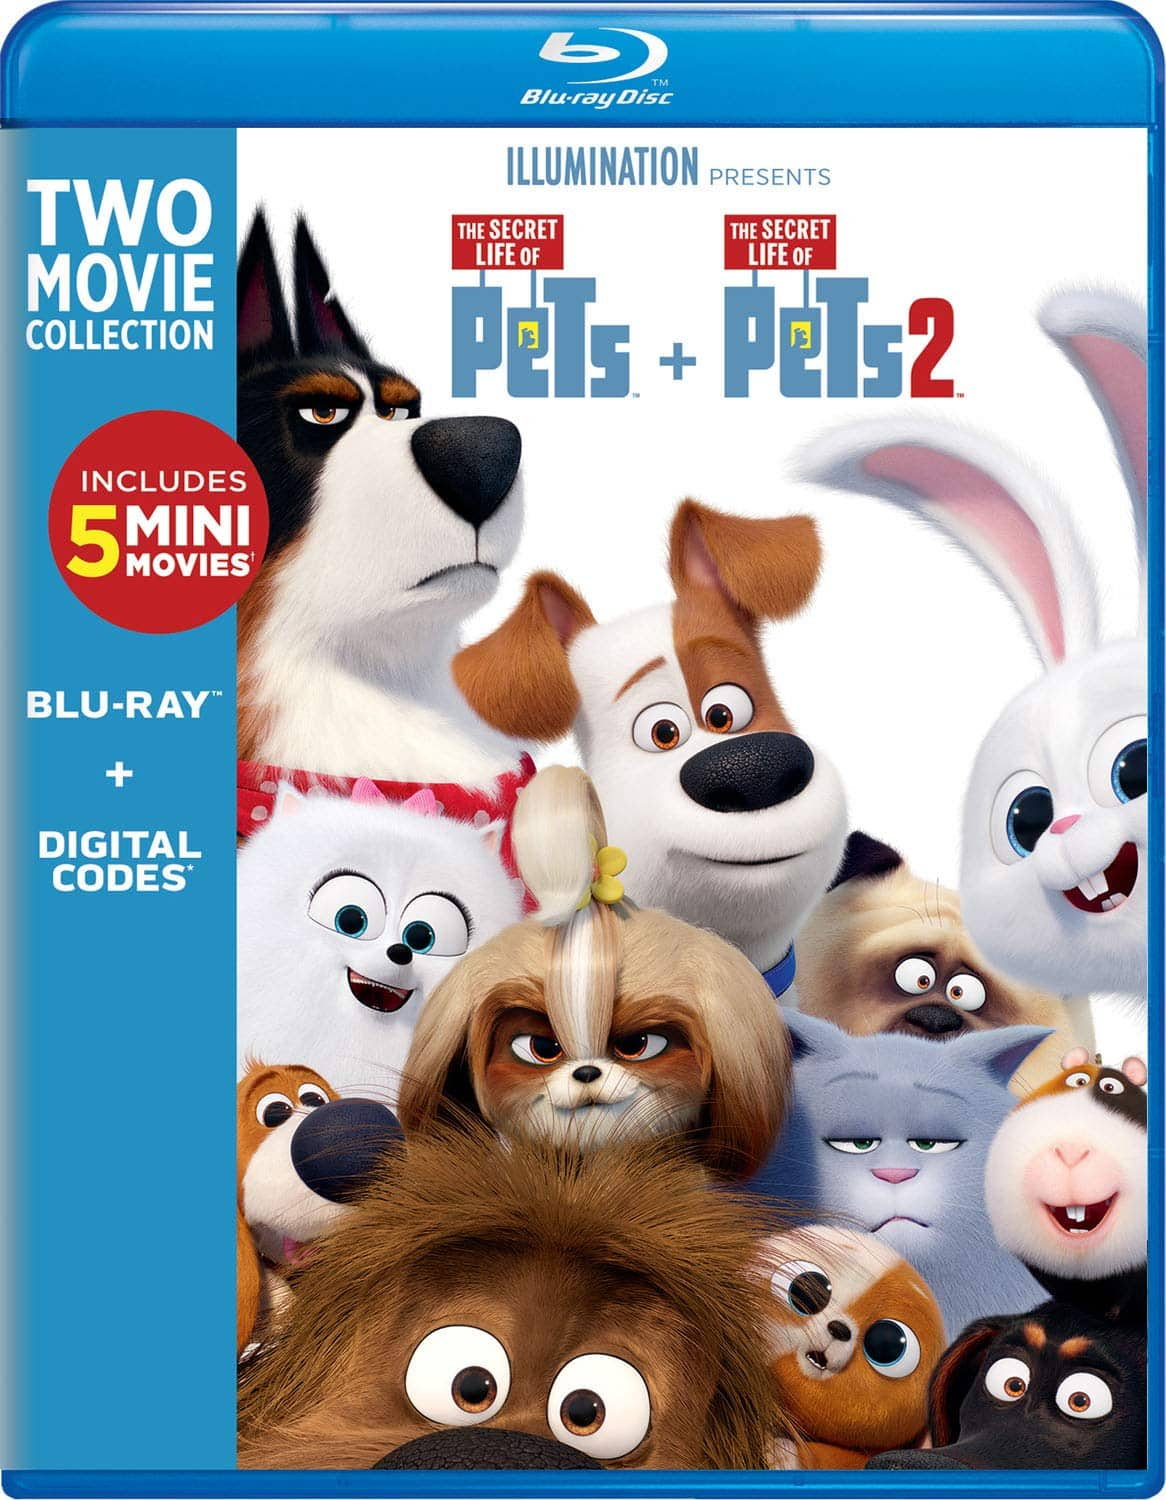 The Secret Life of Pets: 2-Movie Collection blu-ray $15